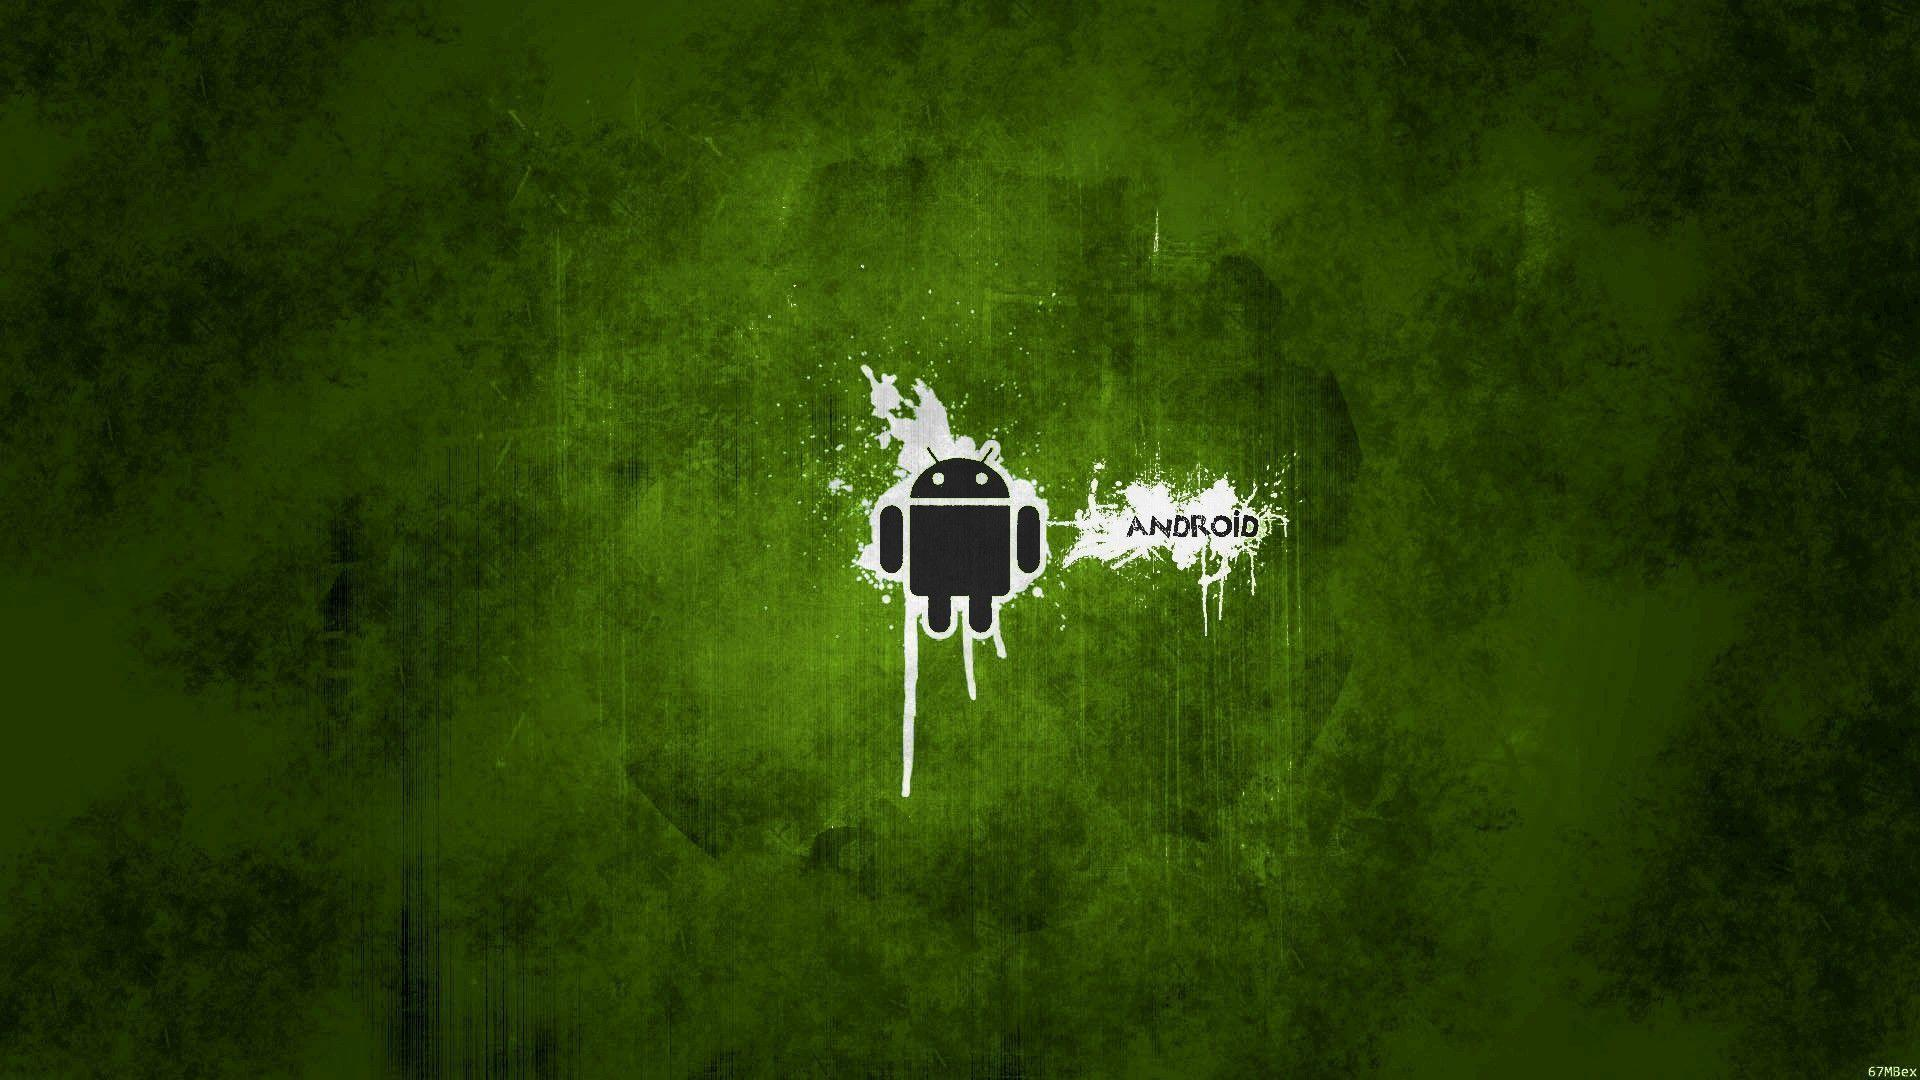 Free wallpapers for android mobile